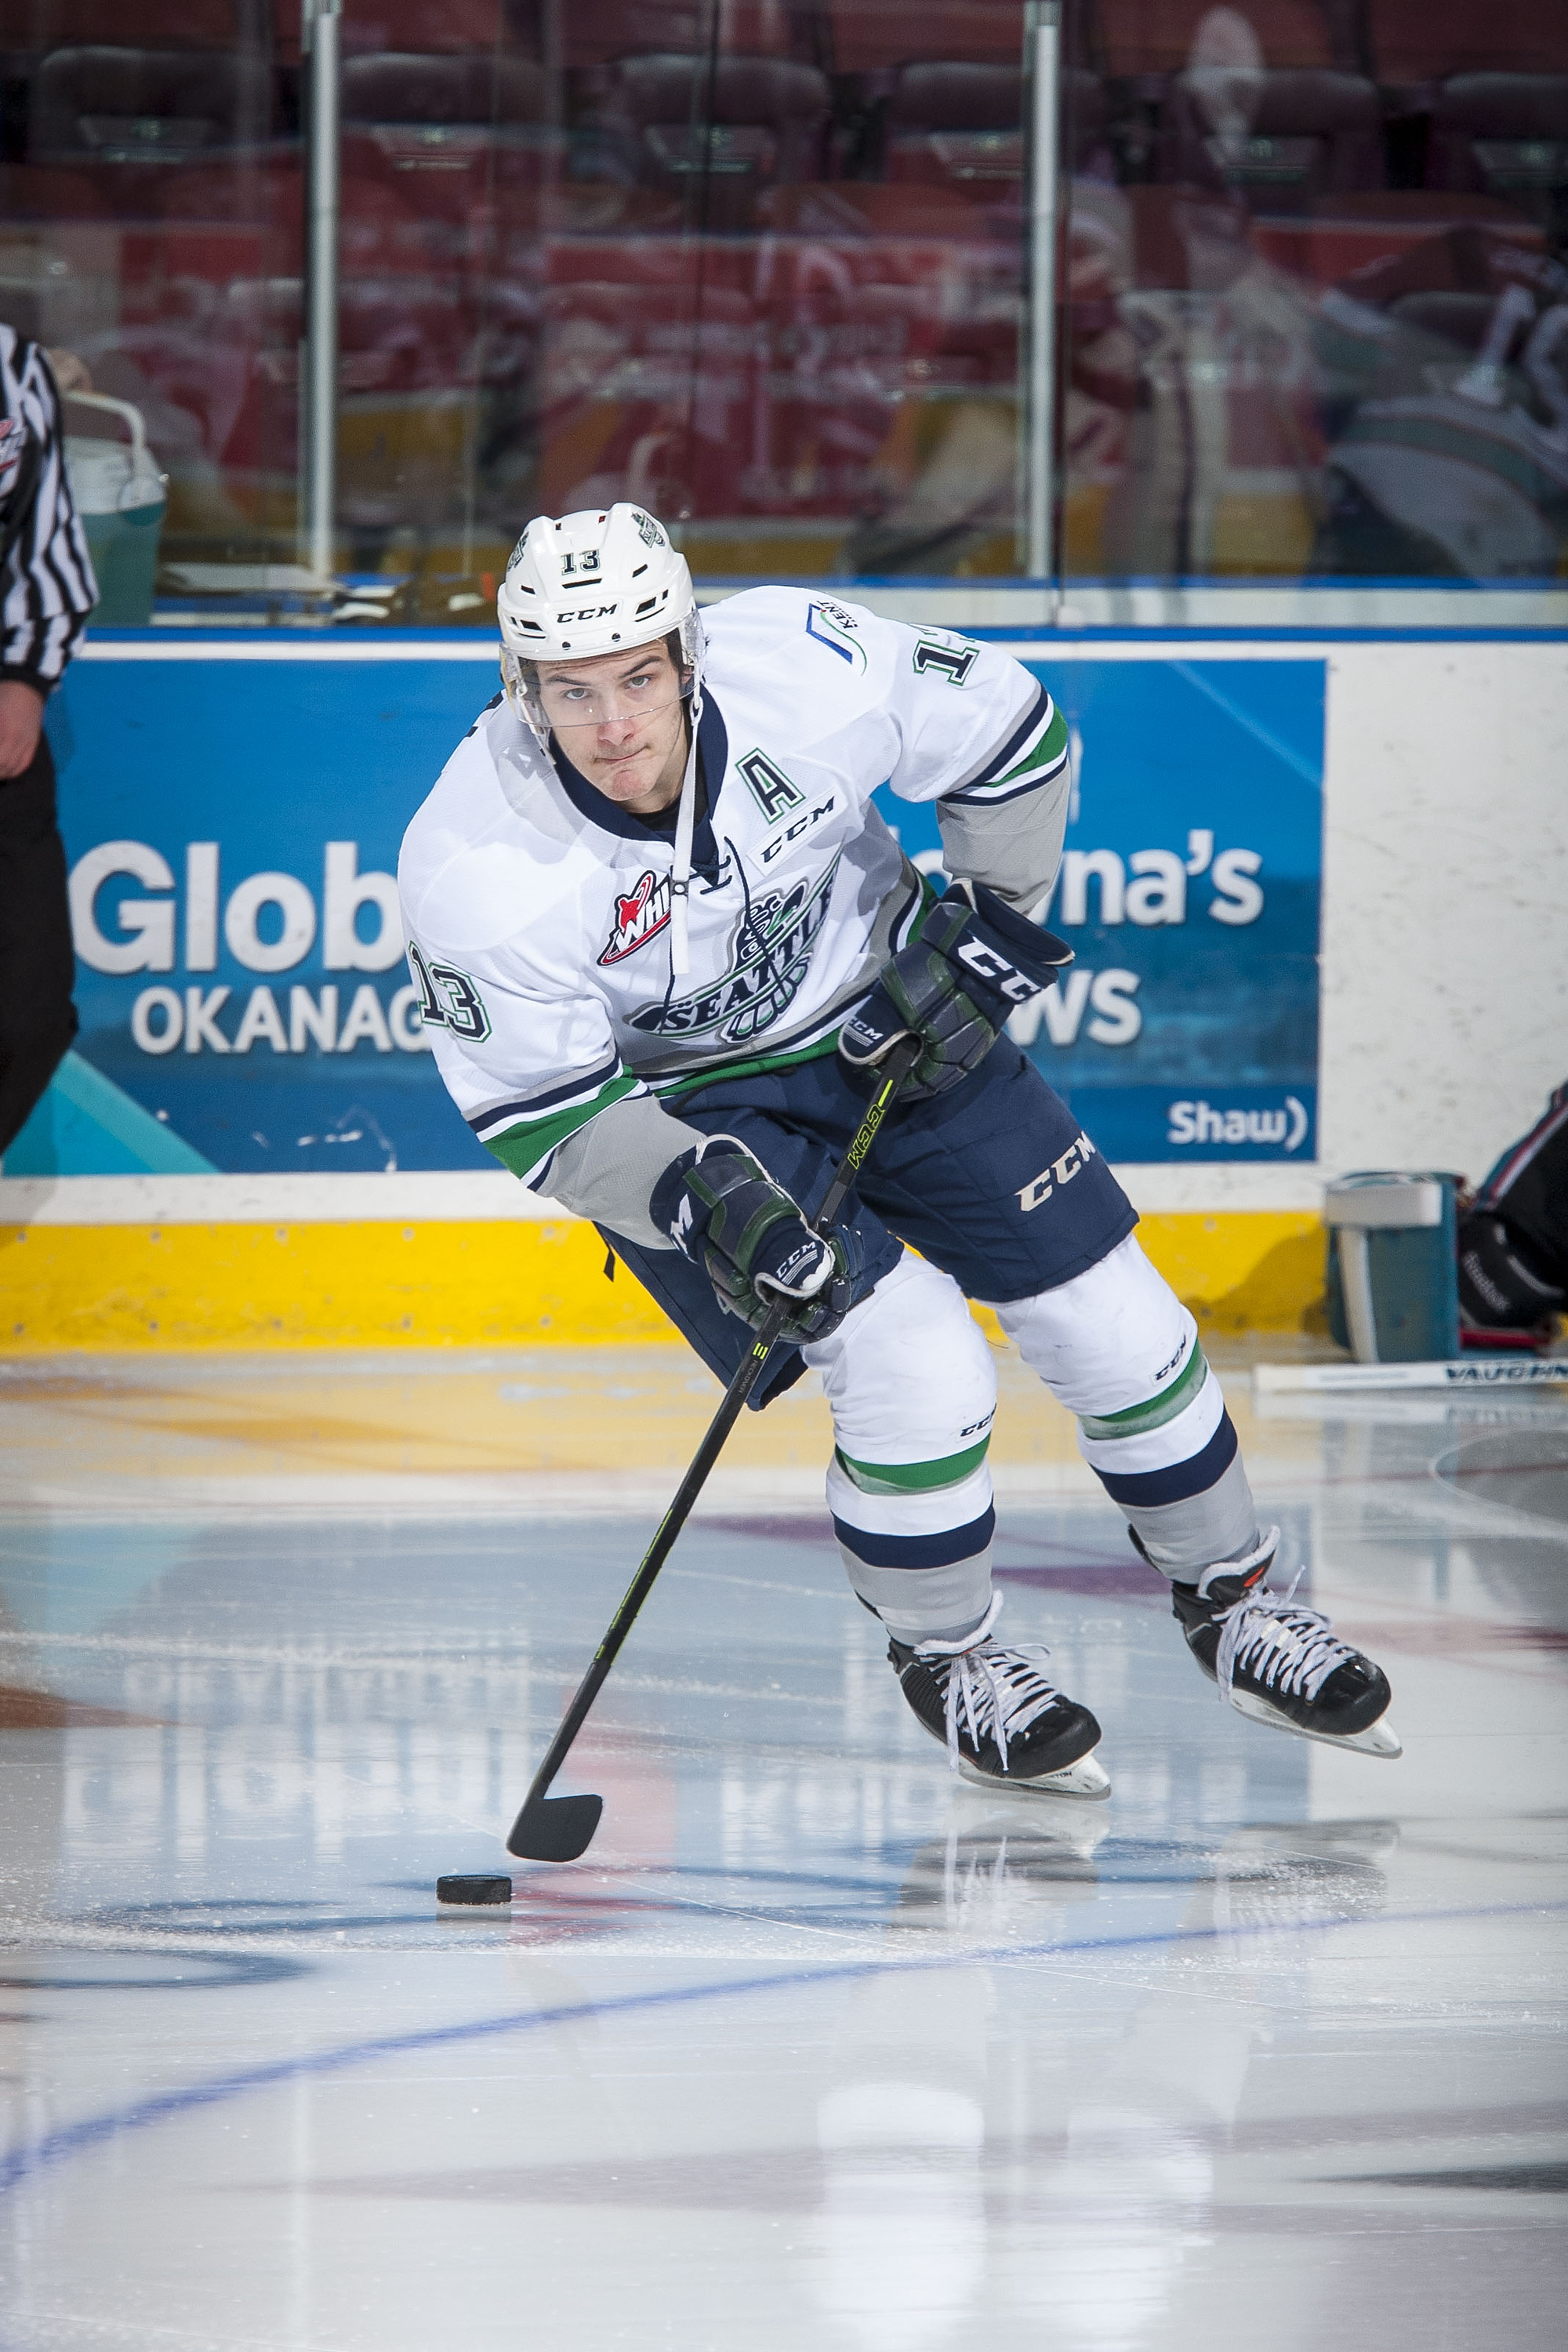 Mathew Barzal leads Seattle's charge for their second straight U.S. Division title